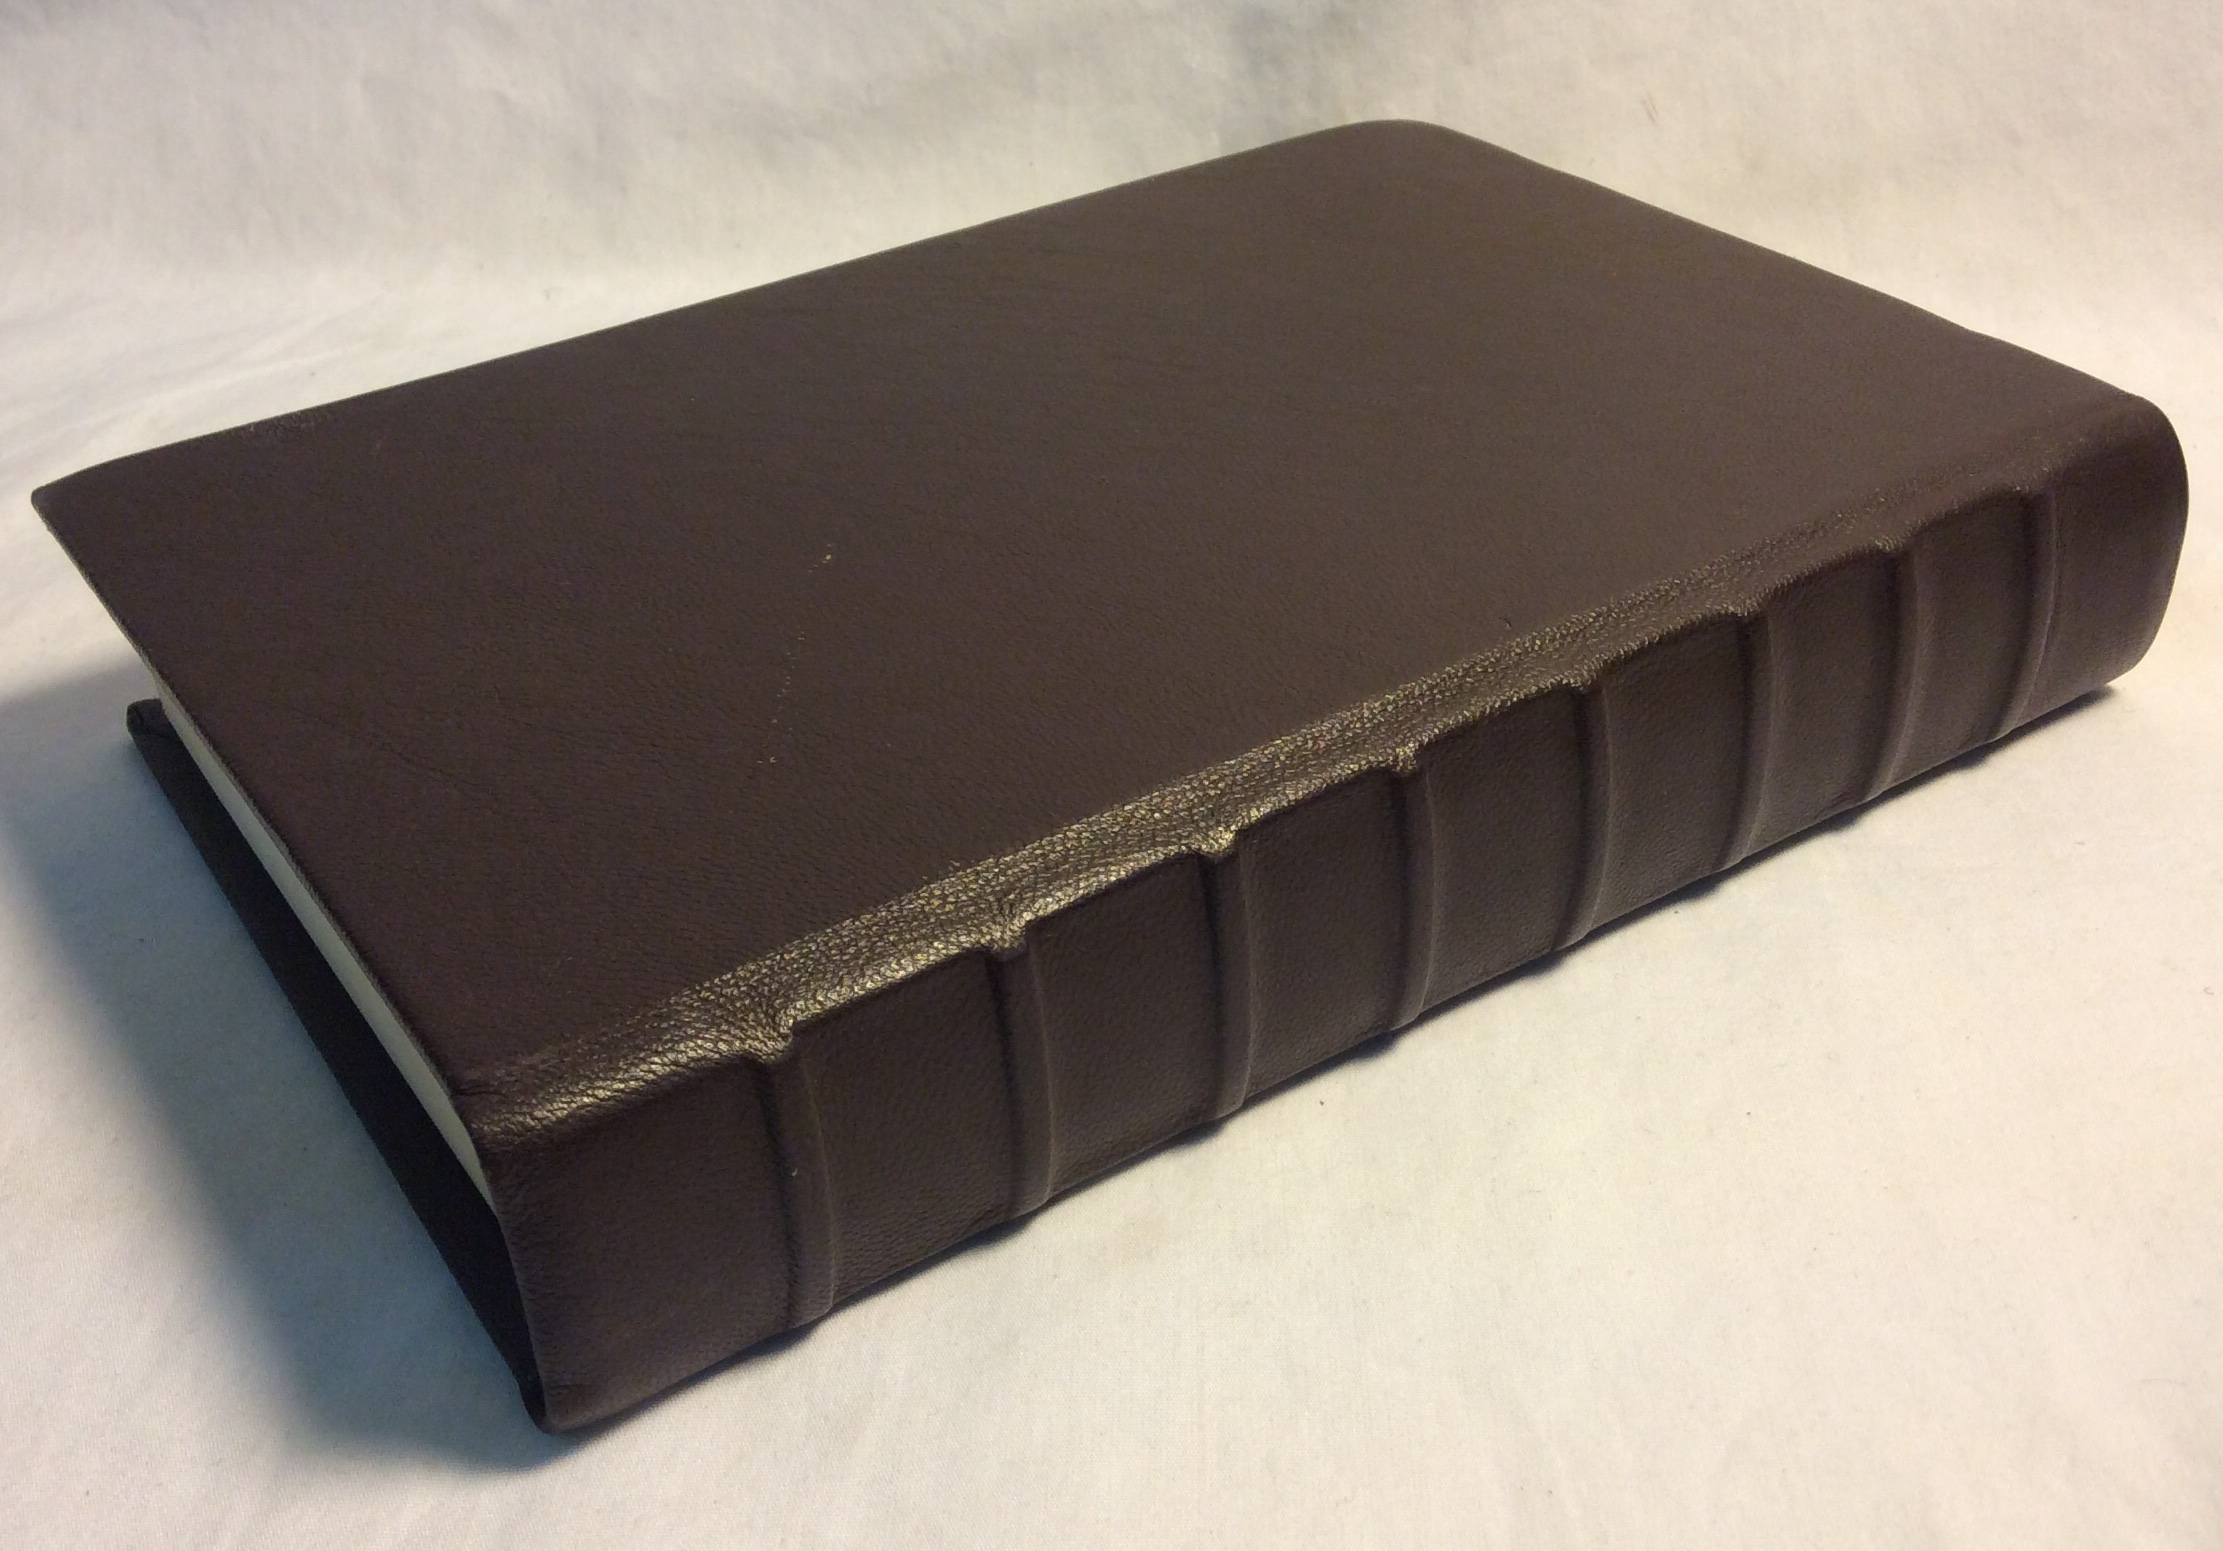 Brown hardcover storybook